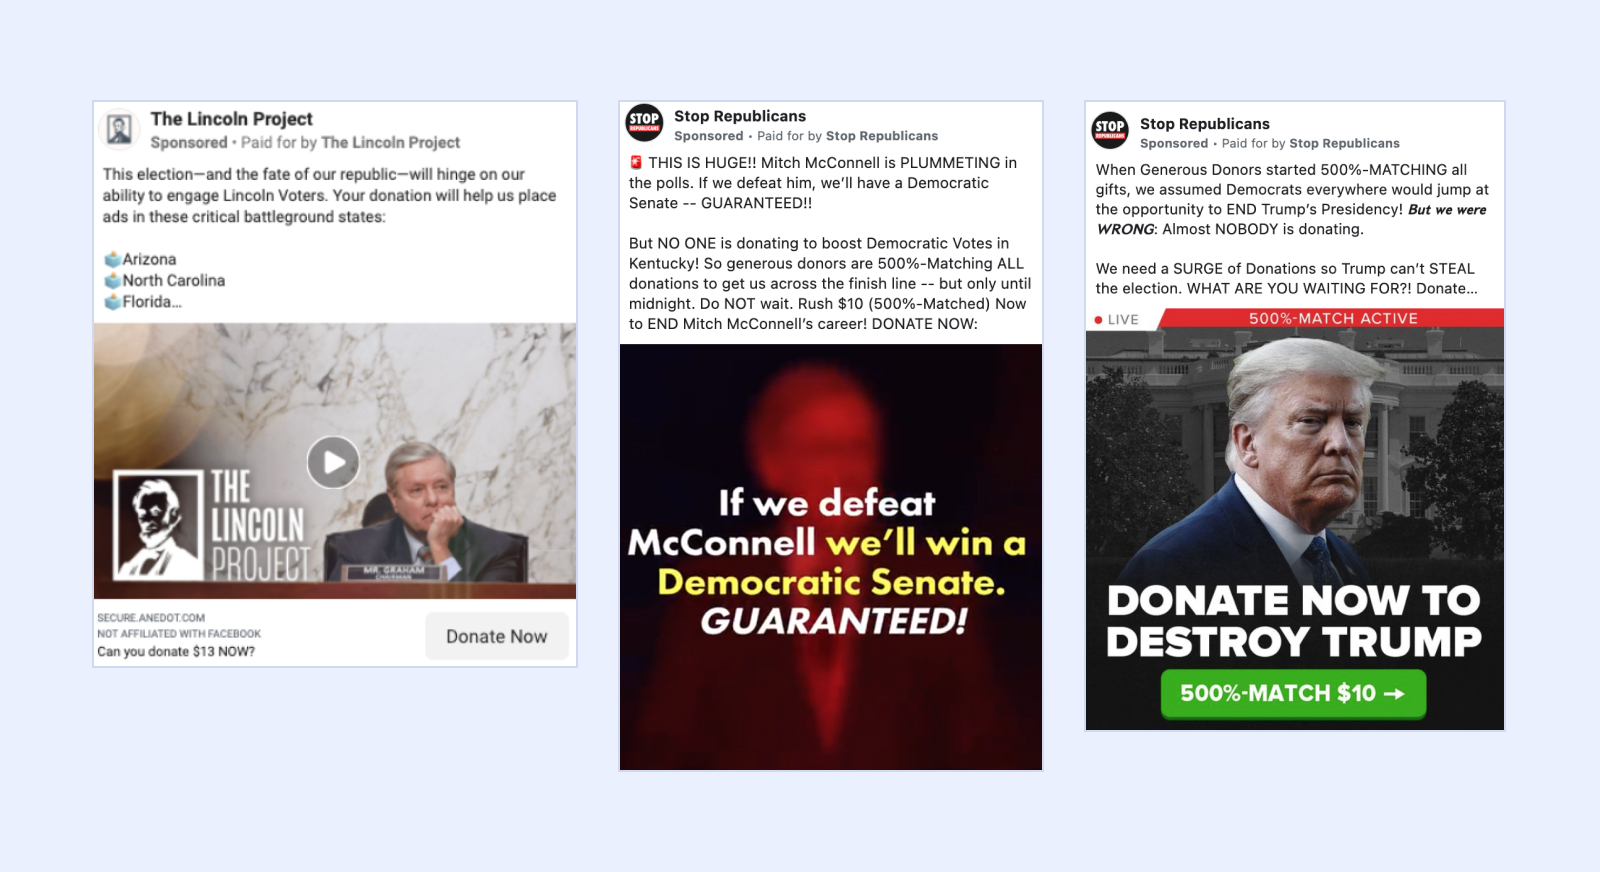 Fundraising ads from Facebook that are divisive in tone.